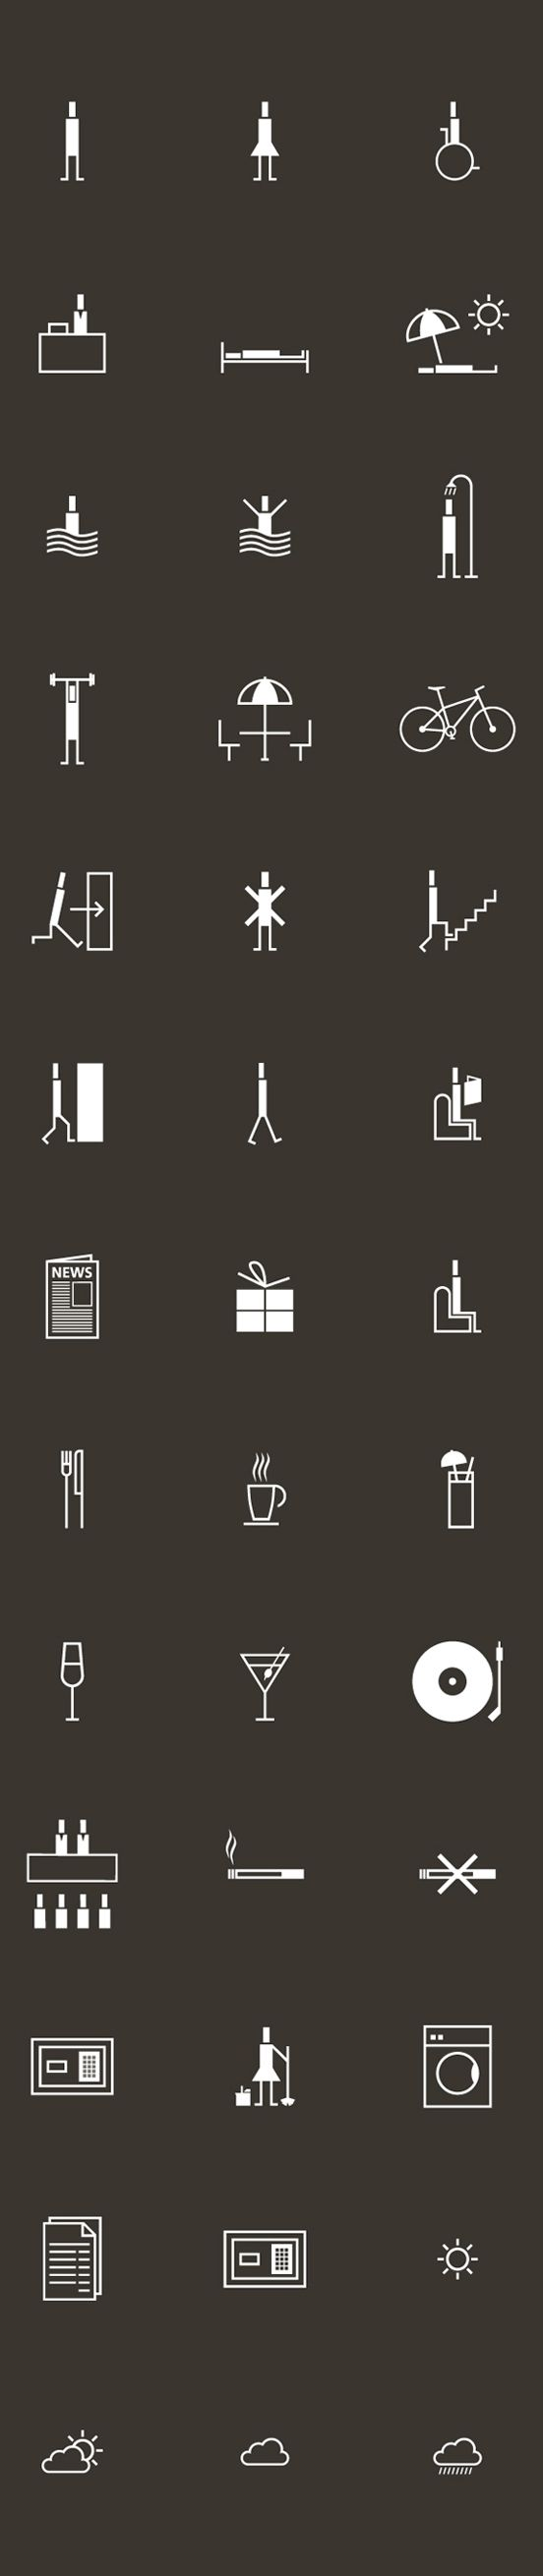 SON VENT PICTOGRAMS by GAIZKADESIGN , via Behance